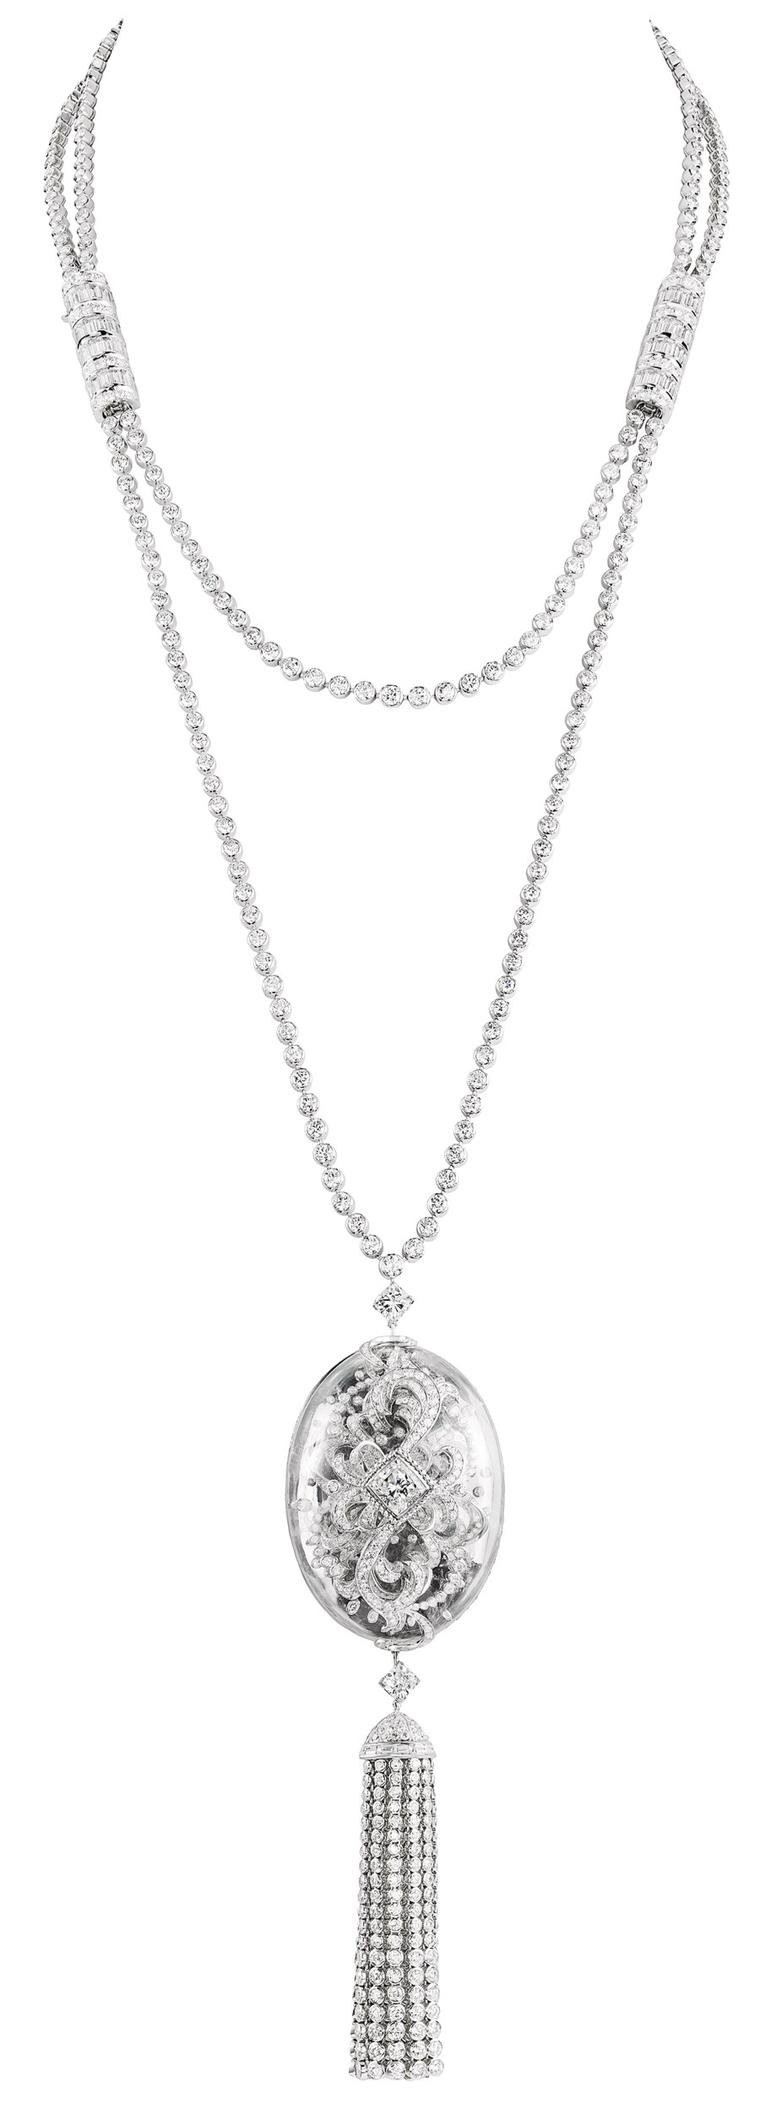 boucheron-nature-de-cristal-necklace-v1